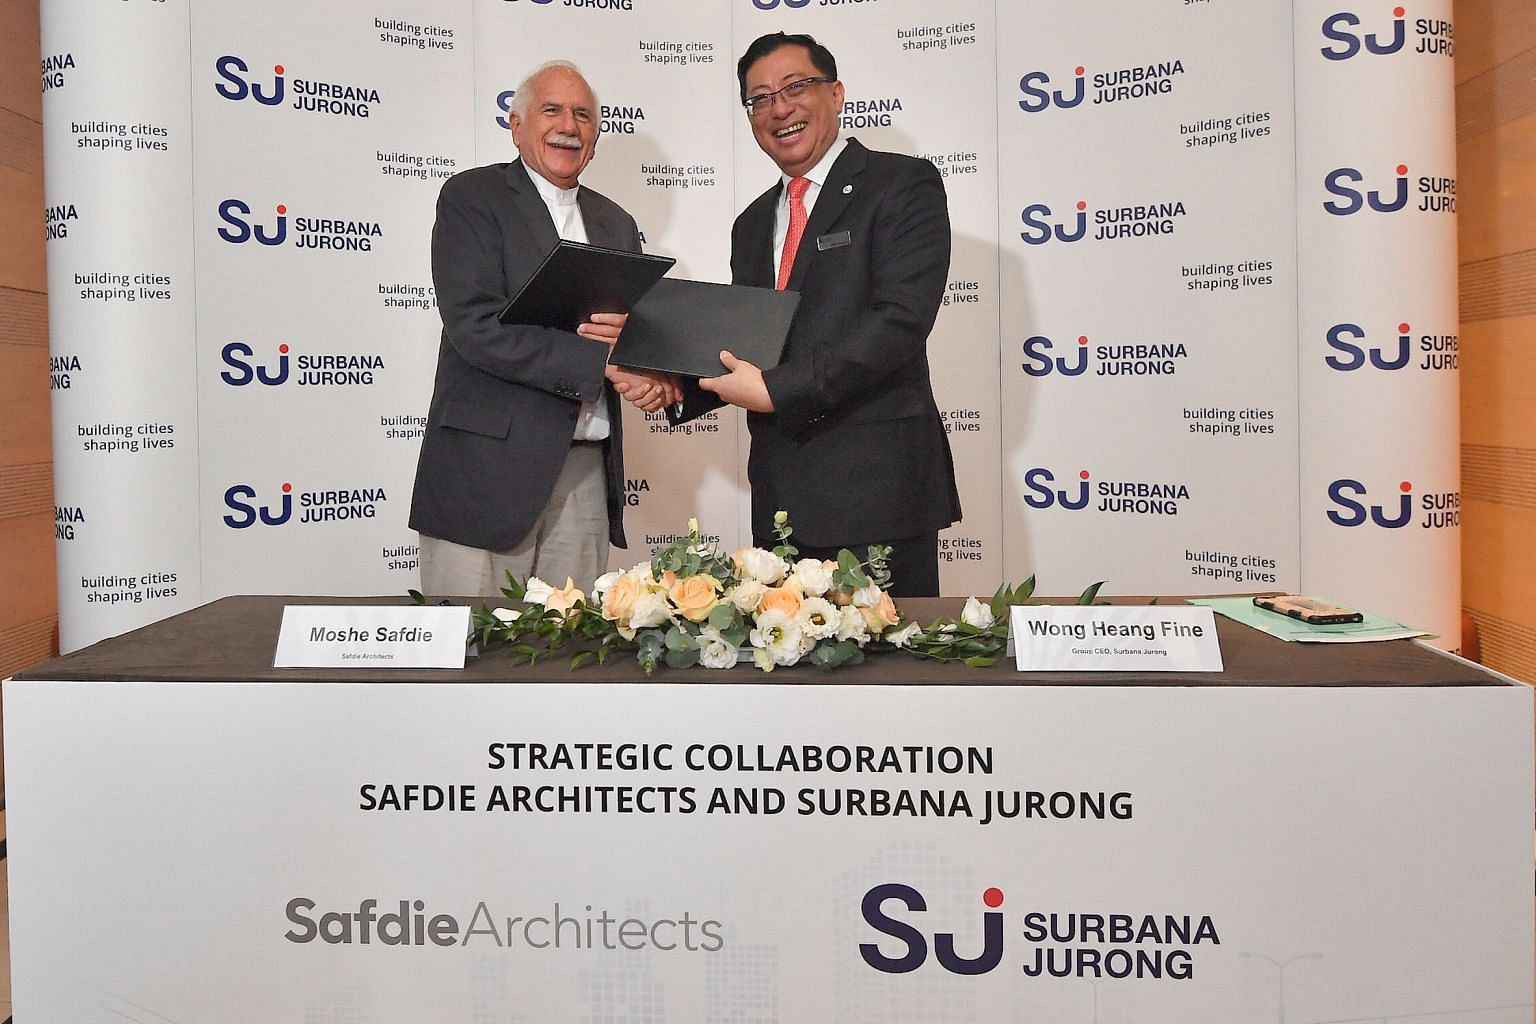 Mr Moshe Safdie and Mr Wong Heang Fine at a signing ceremony yesterday for the partnership between Surbana and Safdie Architects.